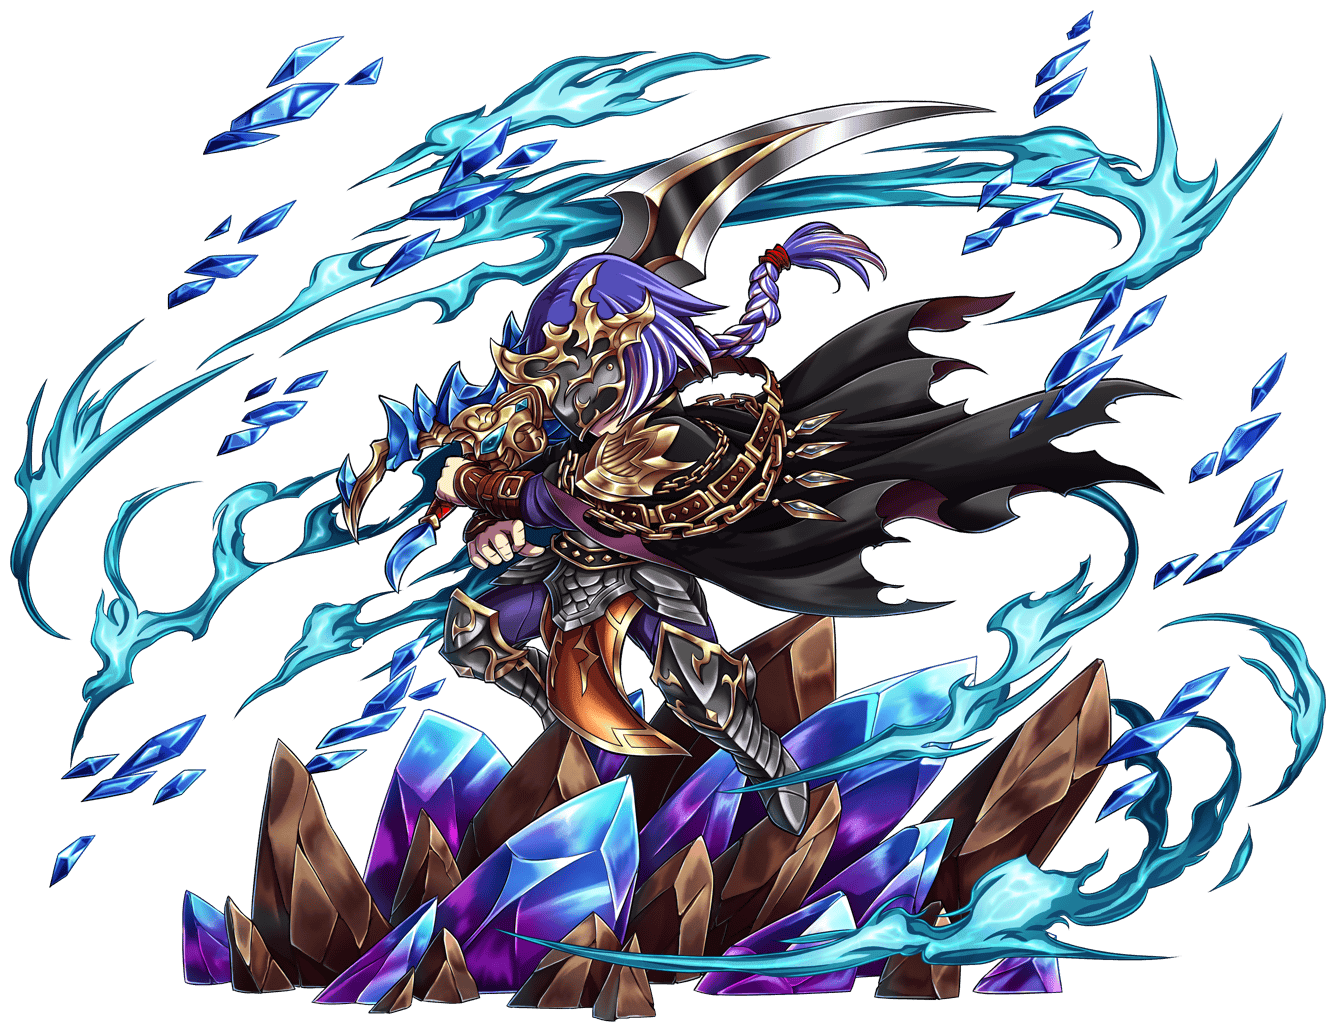 NEW 7* BATCH COMING UP (11TH BACH) | Brave Frontier Guide  Frontier Guide